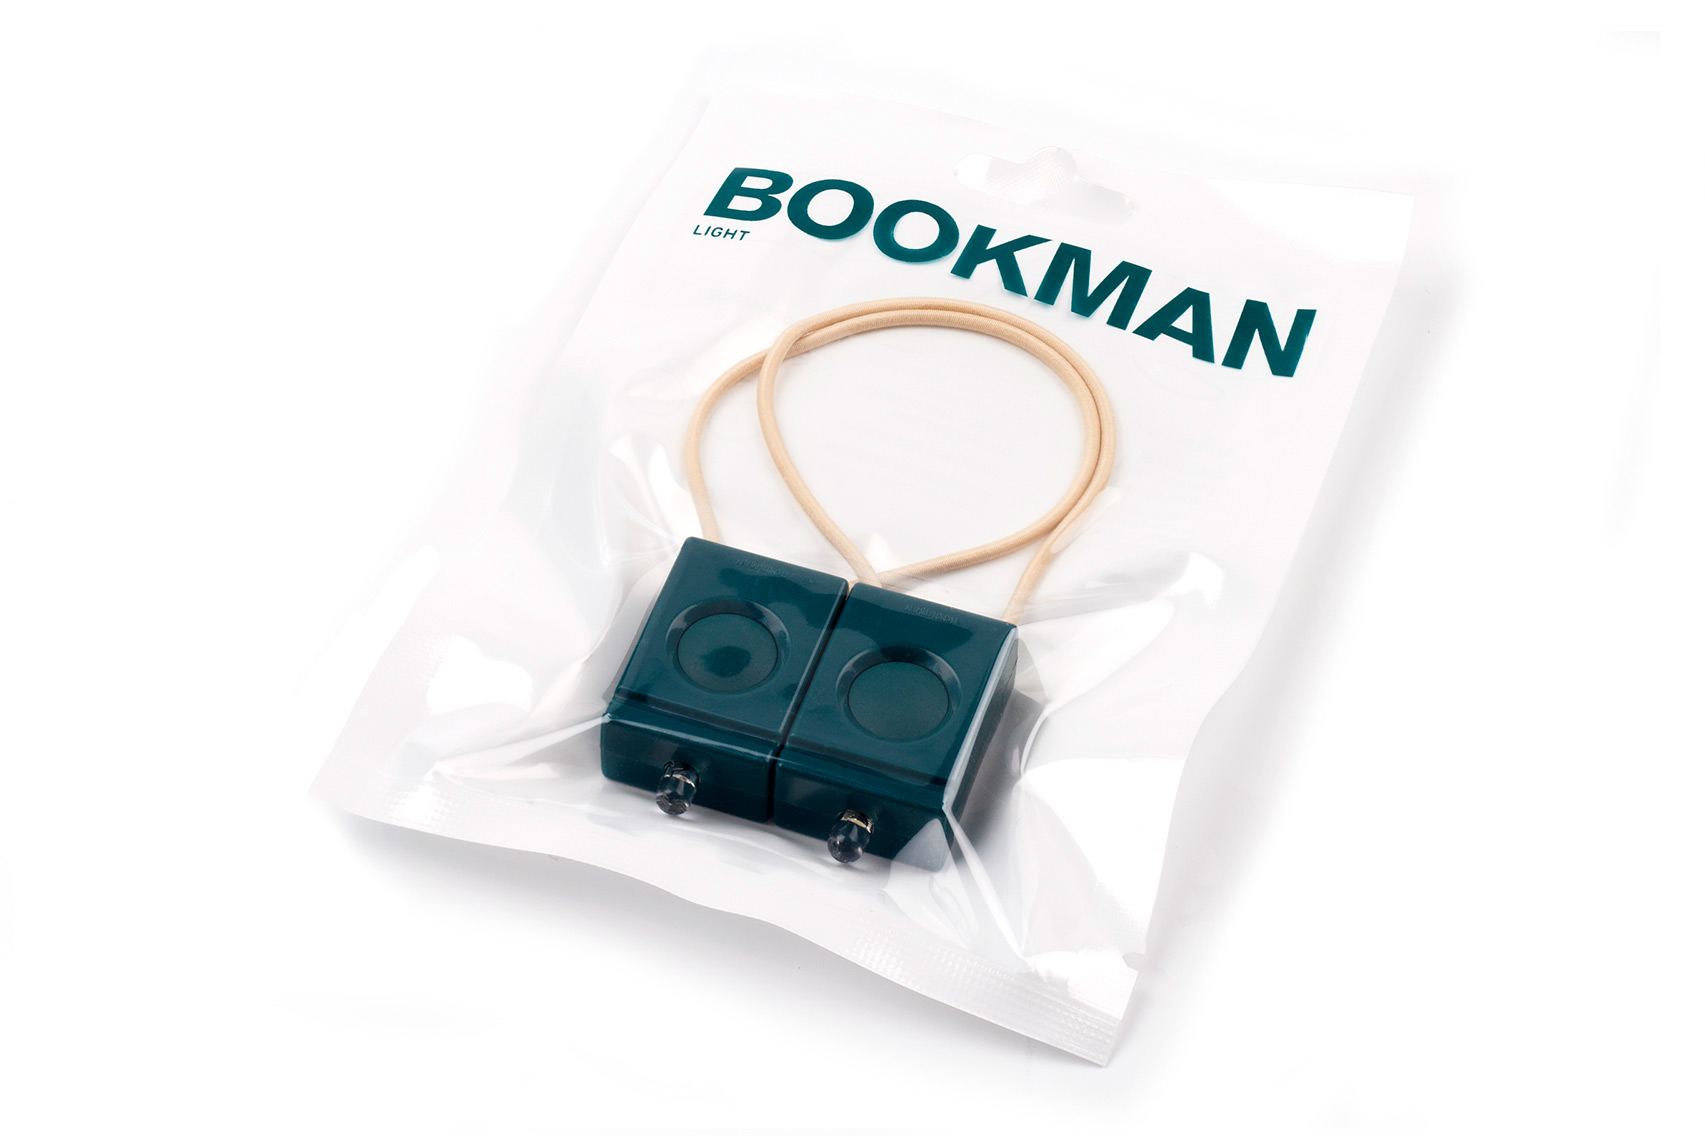 bookman-bicycle-lights-03